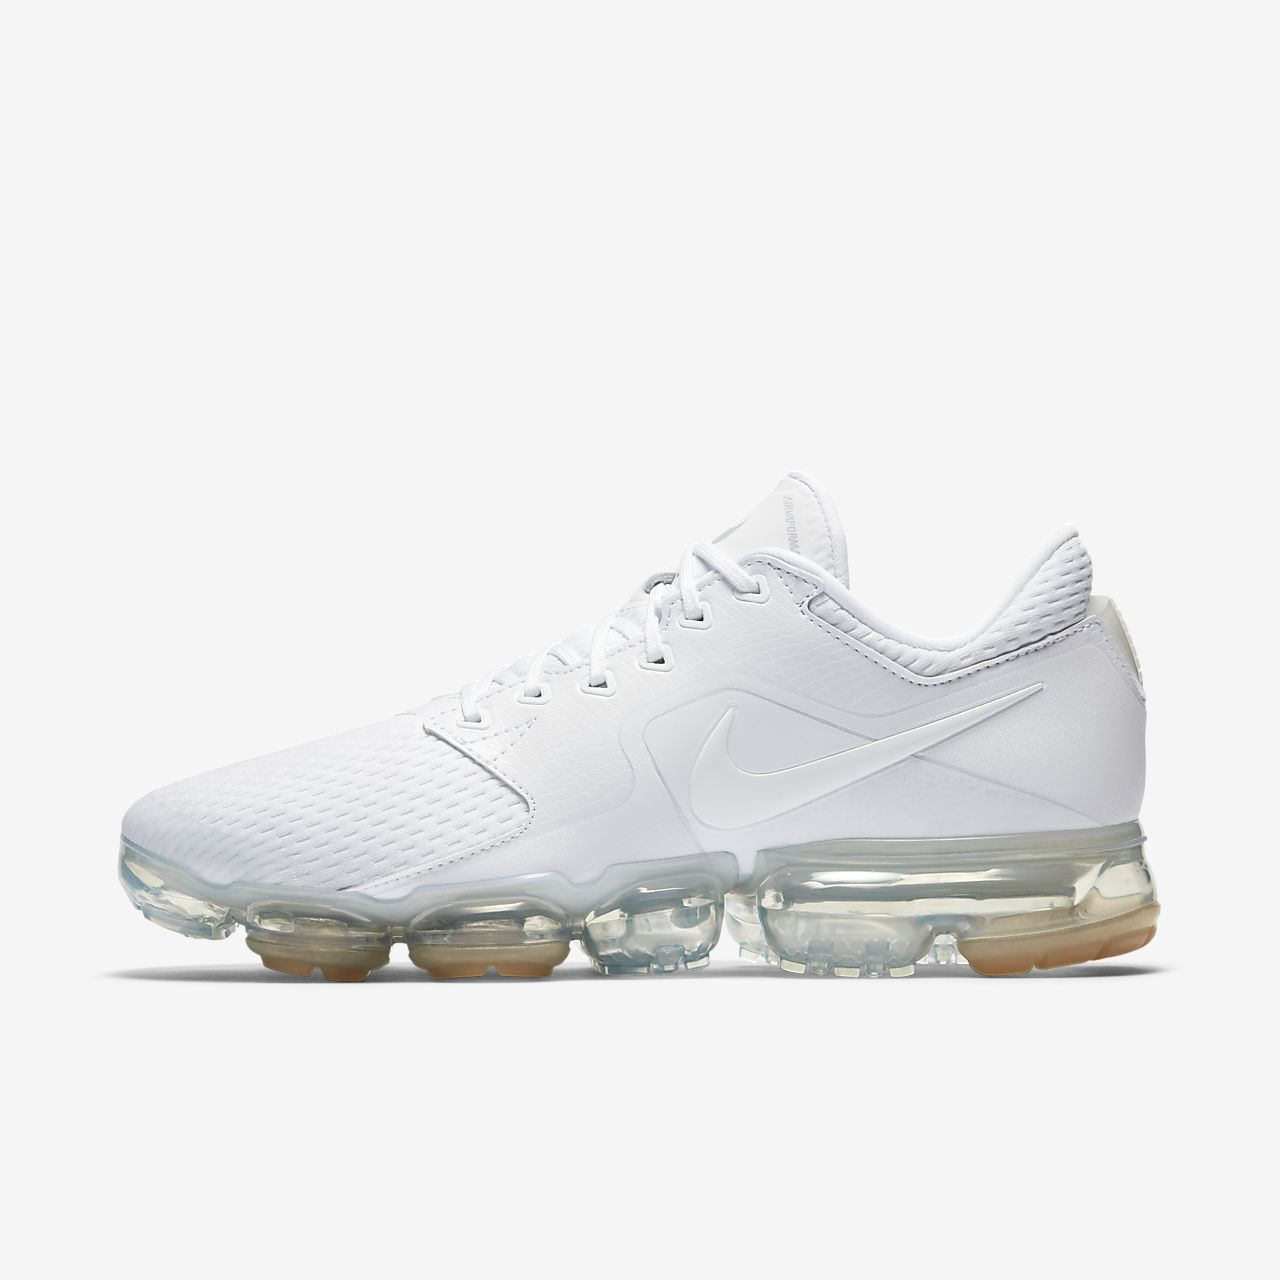 huge selection of 68ec5 5a55e ... Chaussure Nike Air VaporMax pour Homme